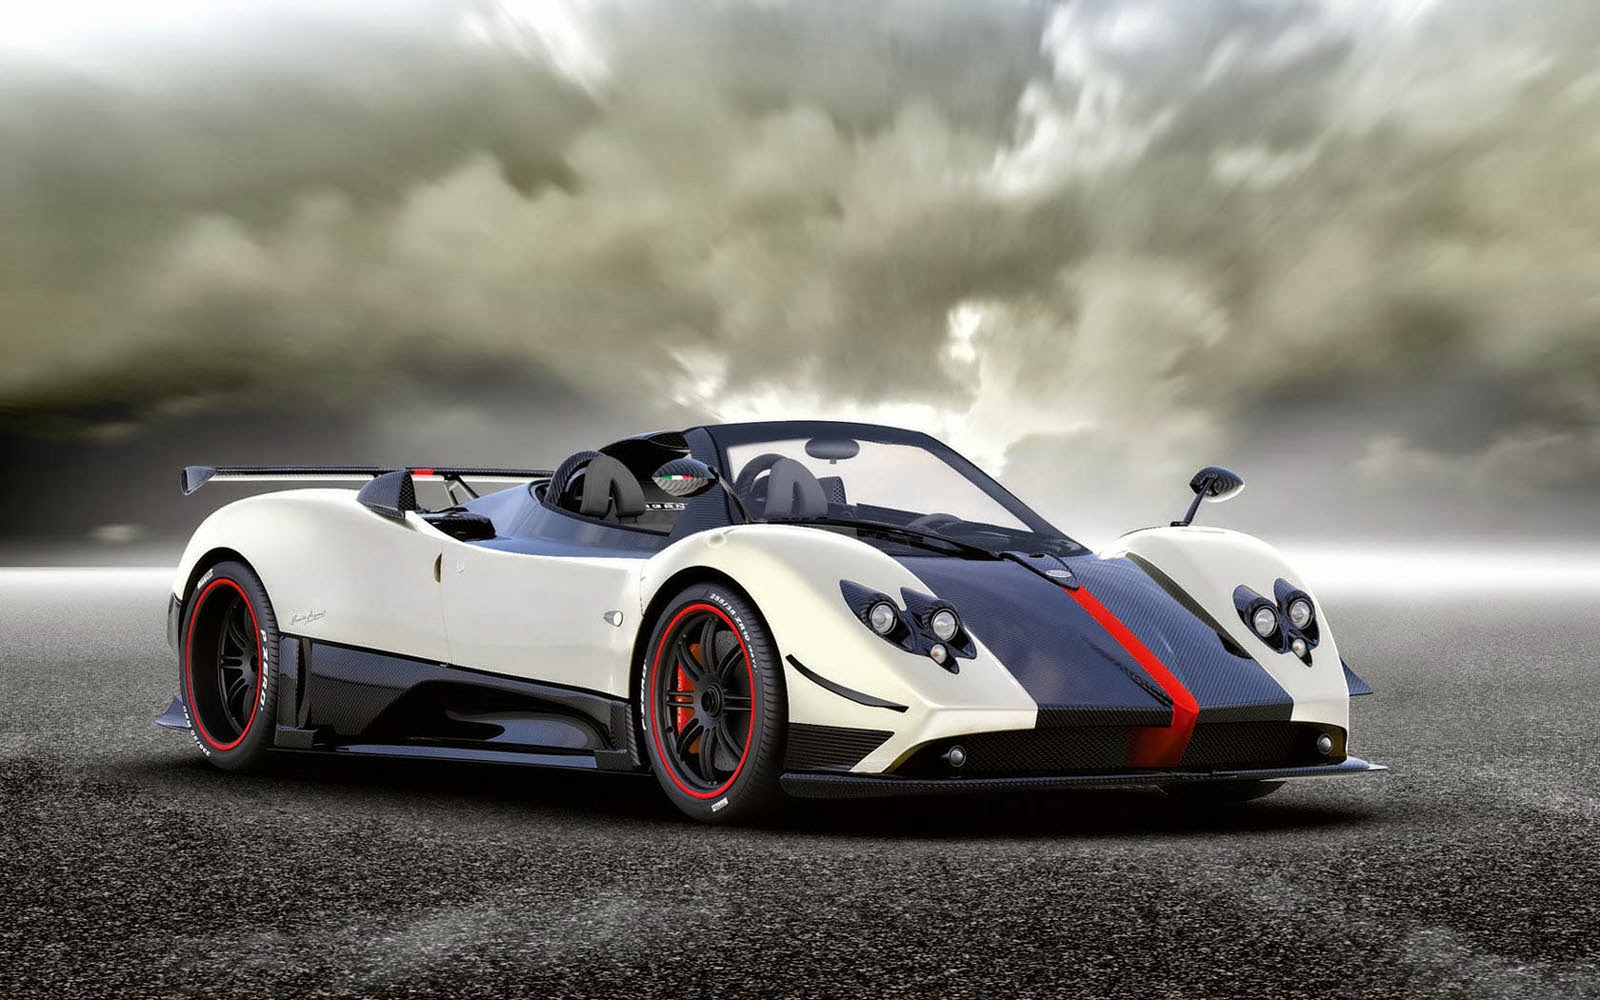 HD Cars Wallpapers 2012 | High Resolution Cars Wallpapers ... |Car Wallpapers For Desktop 2012